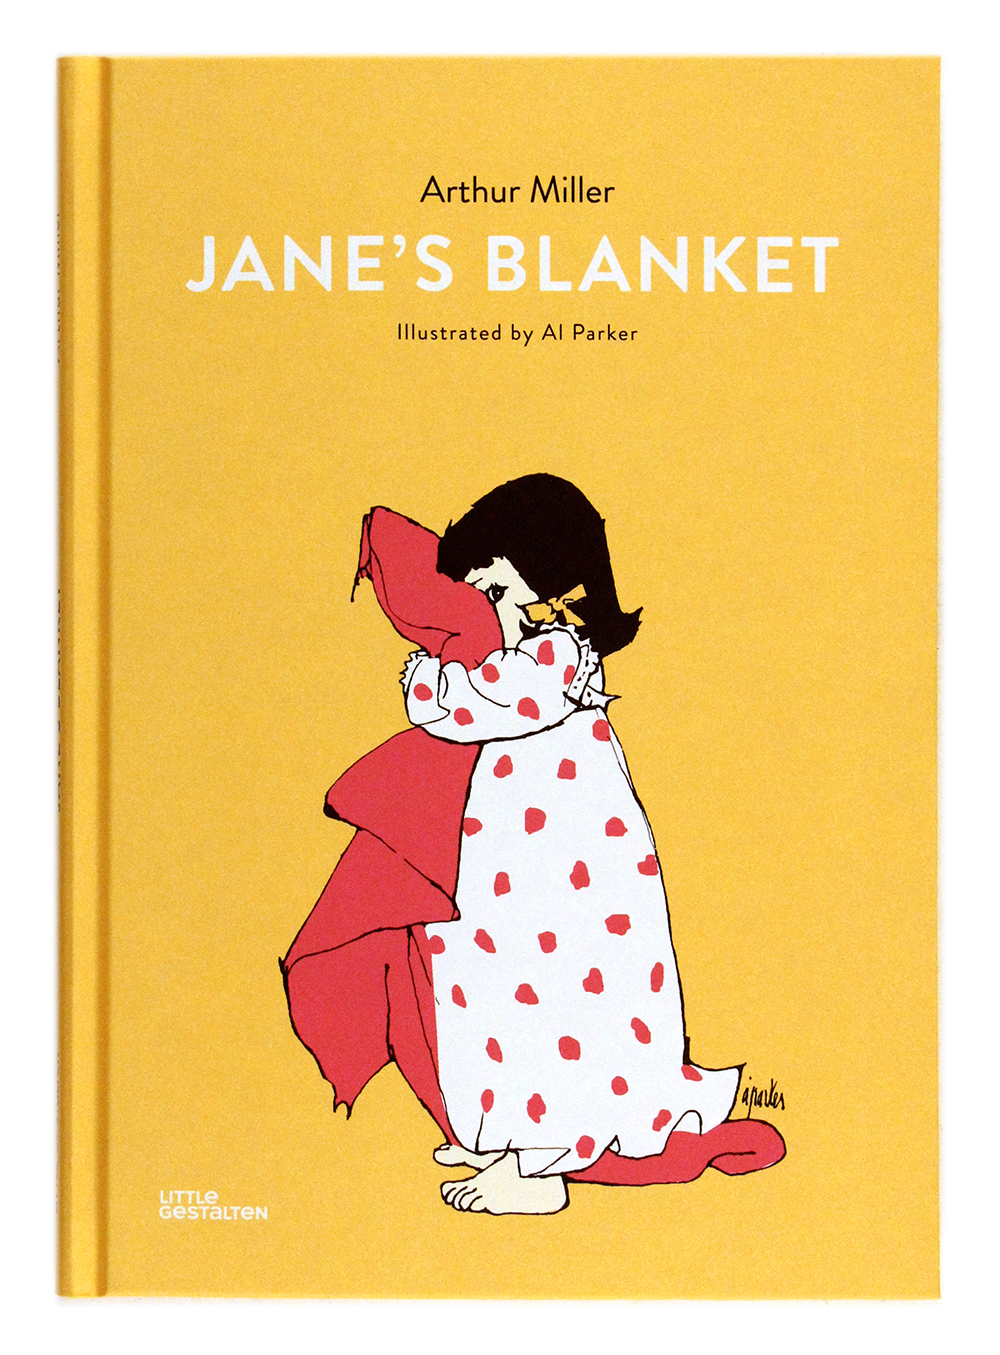 Jane's Blanket (Illustrated by Al Parker)